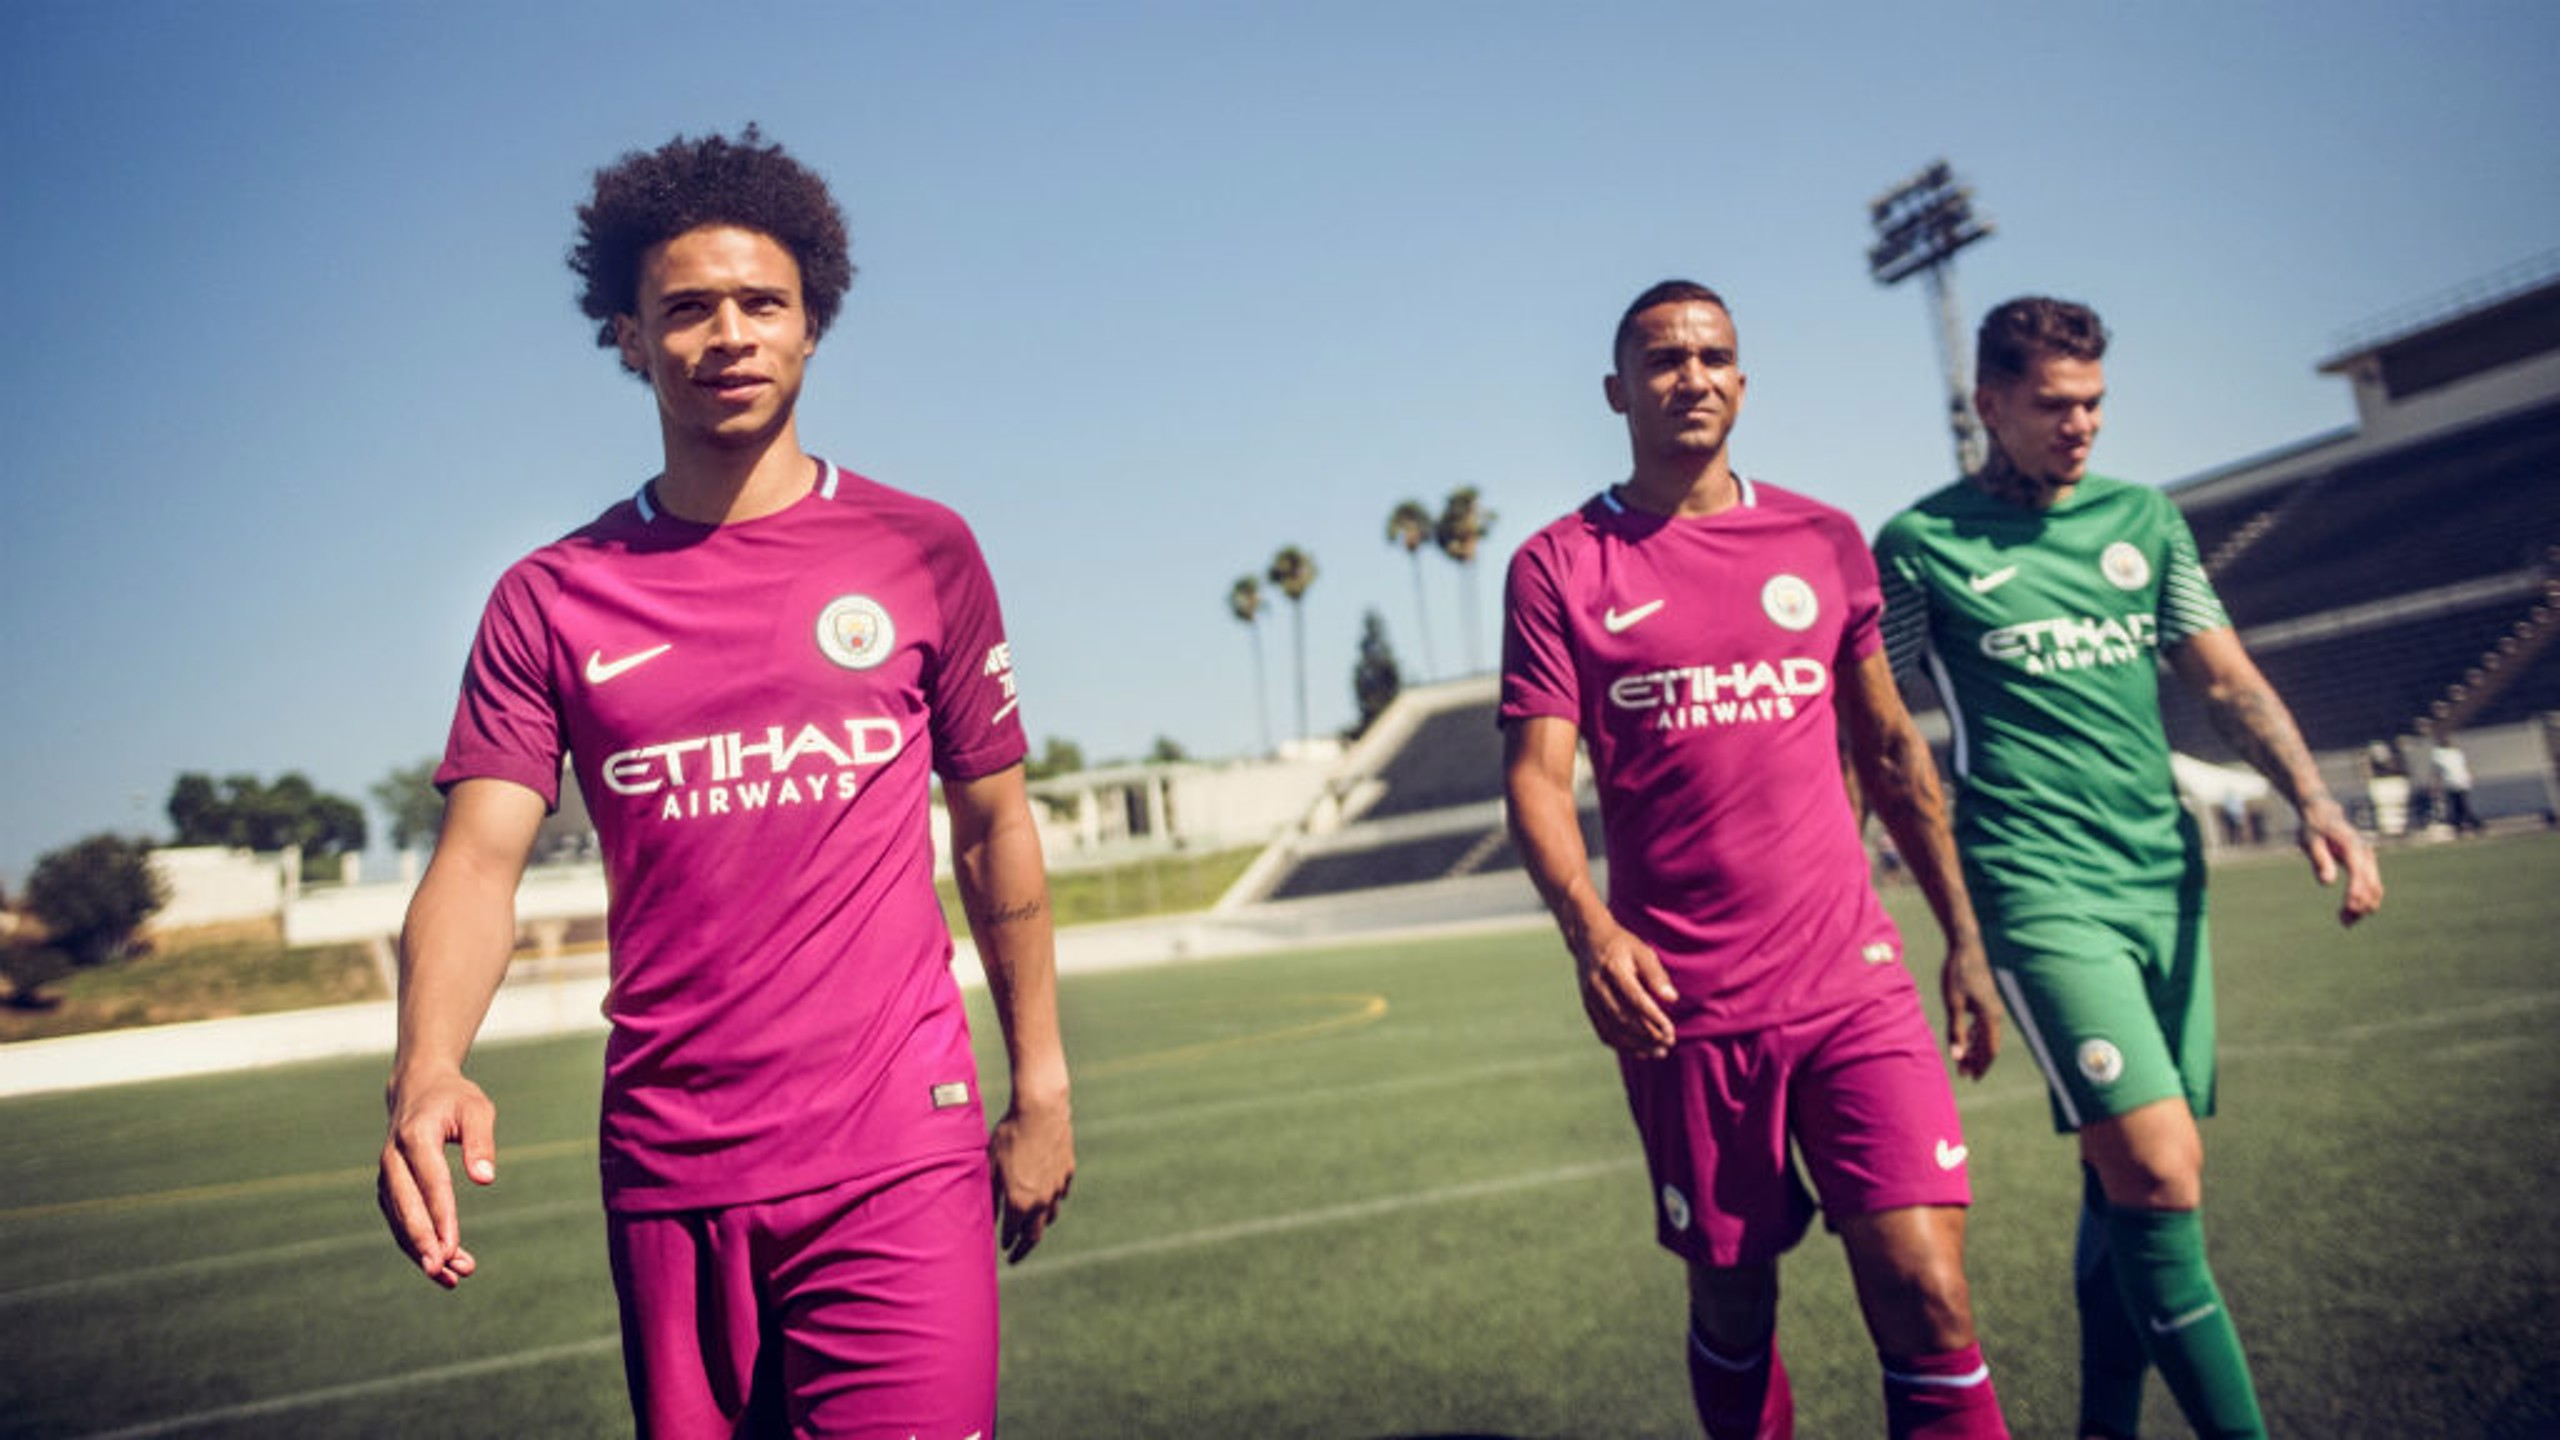 CALIFORNIA LOVE: The LA sunshine was the setting for this year's away kit reveal.